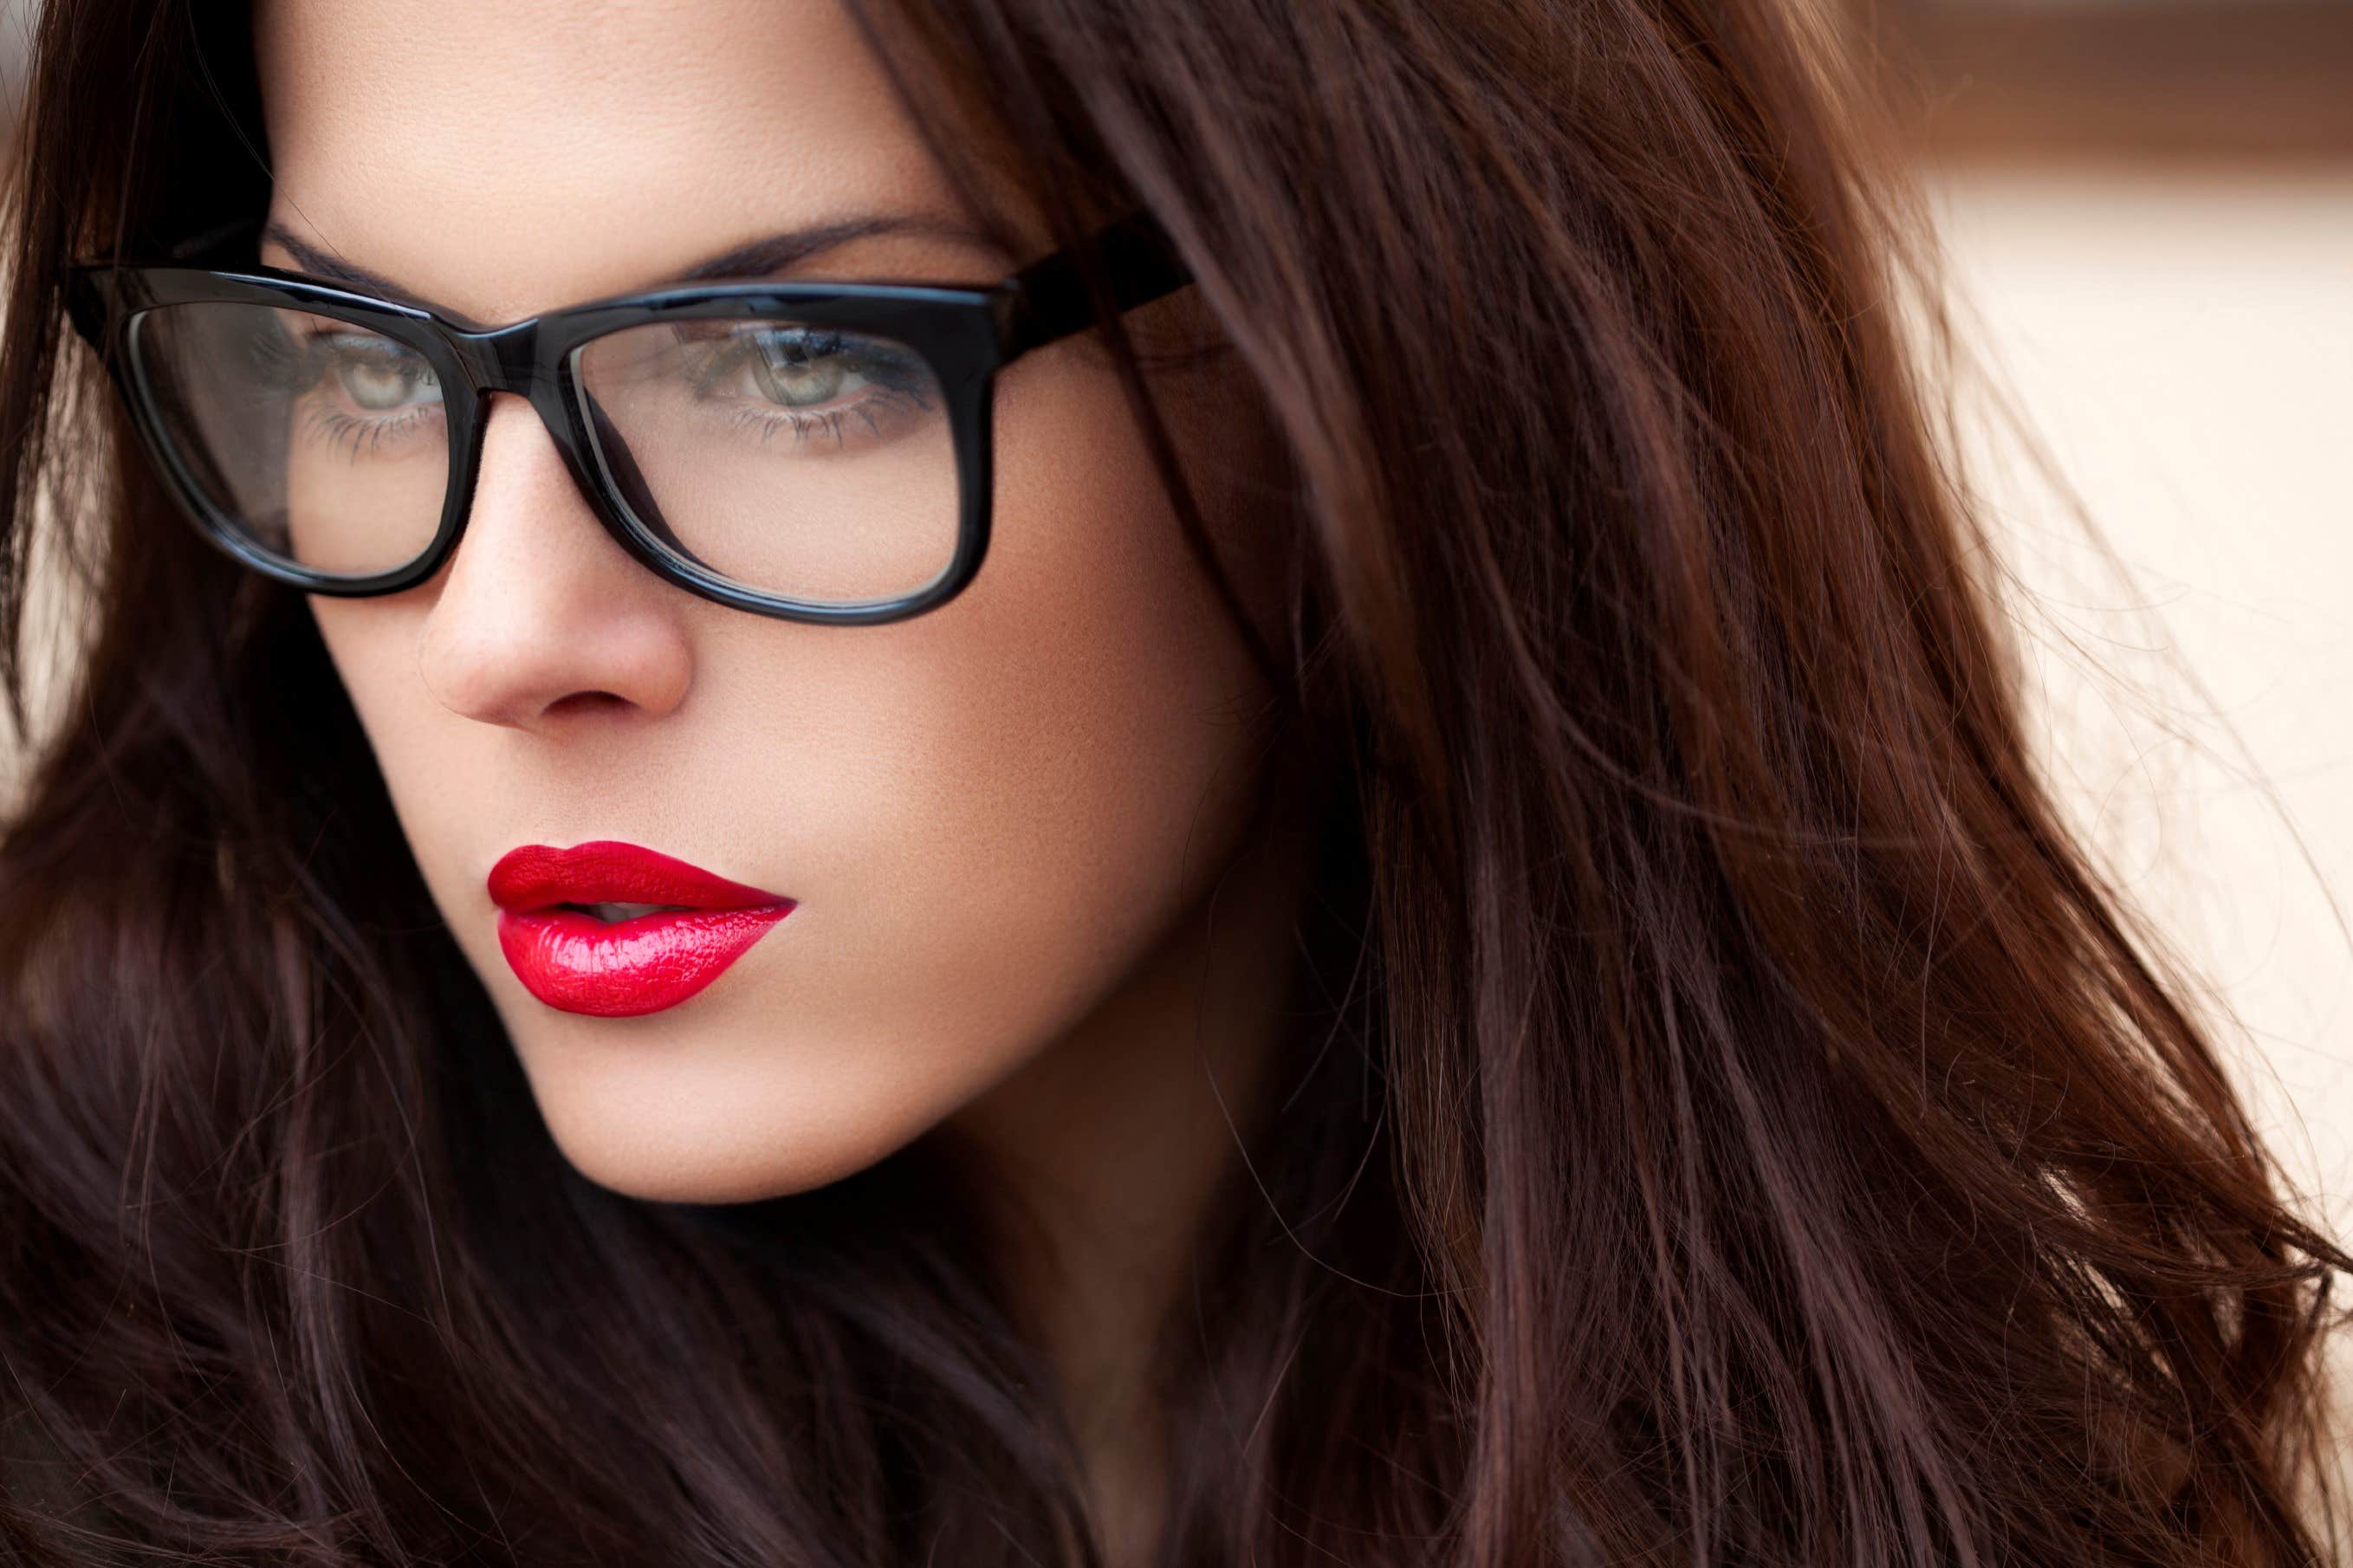 Eyeglasses Cosmetics Challenges